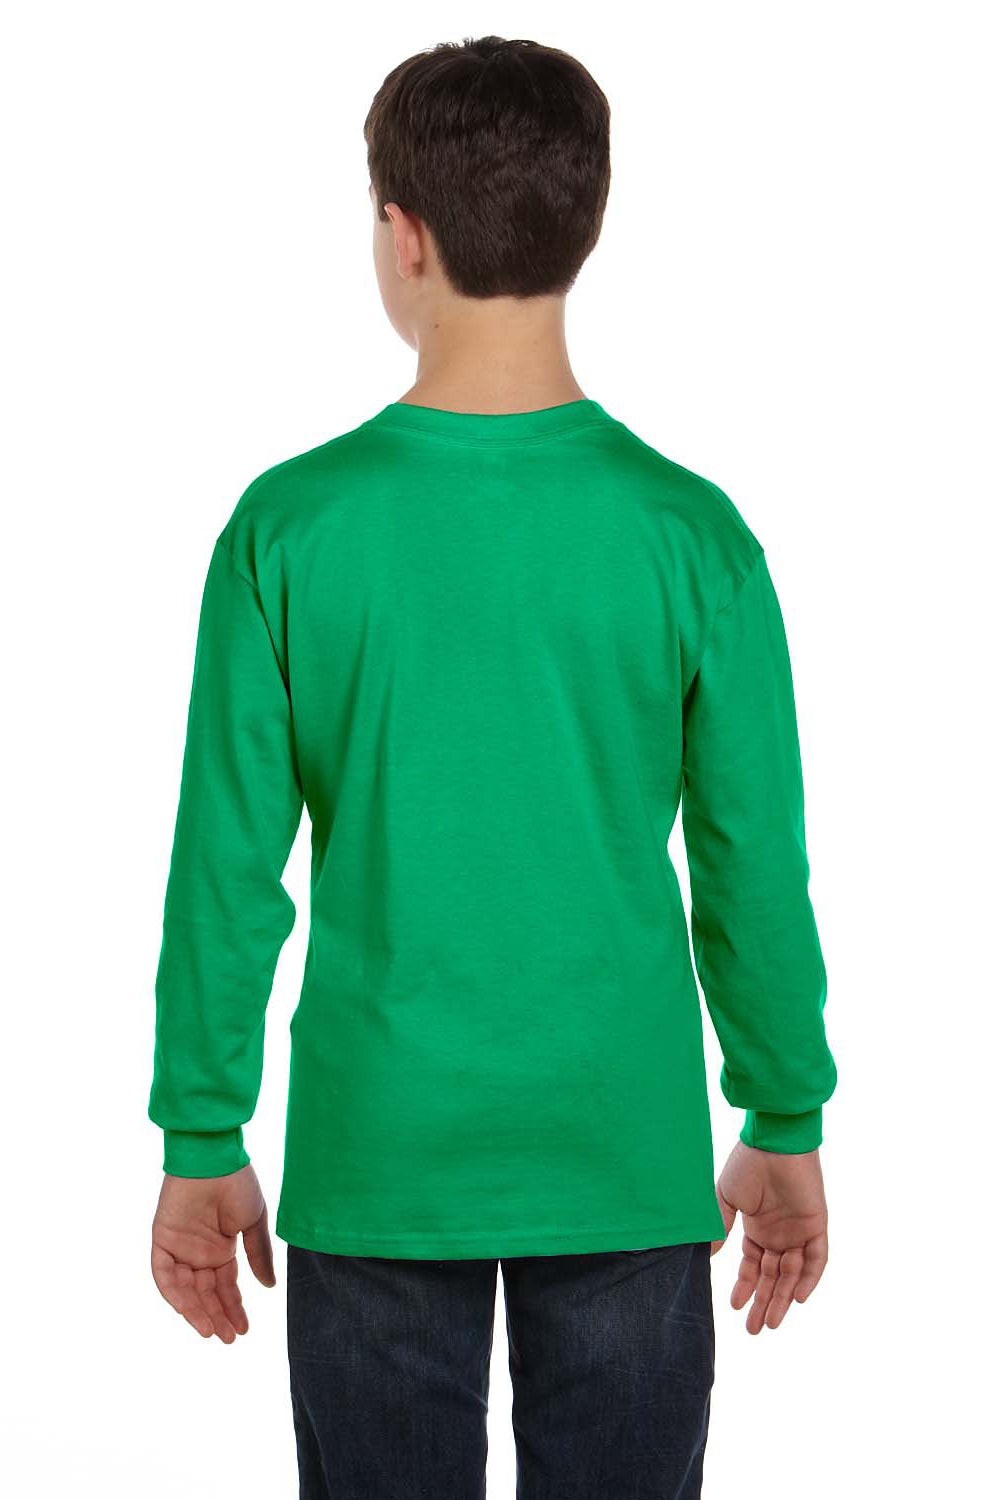 Gildan G540B Youth Long Sleeve Crewneck T-Shirt Irish Green Back